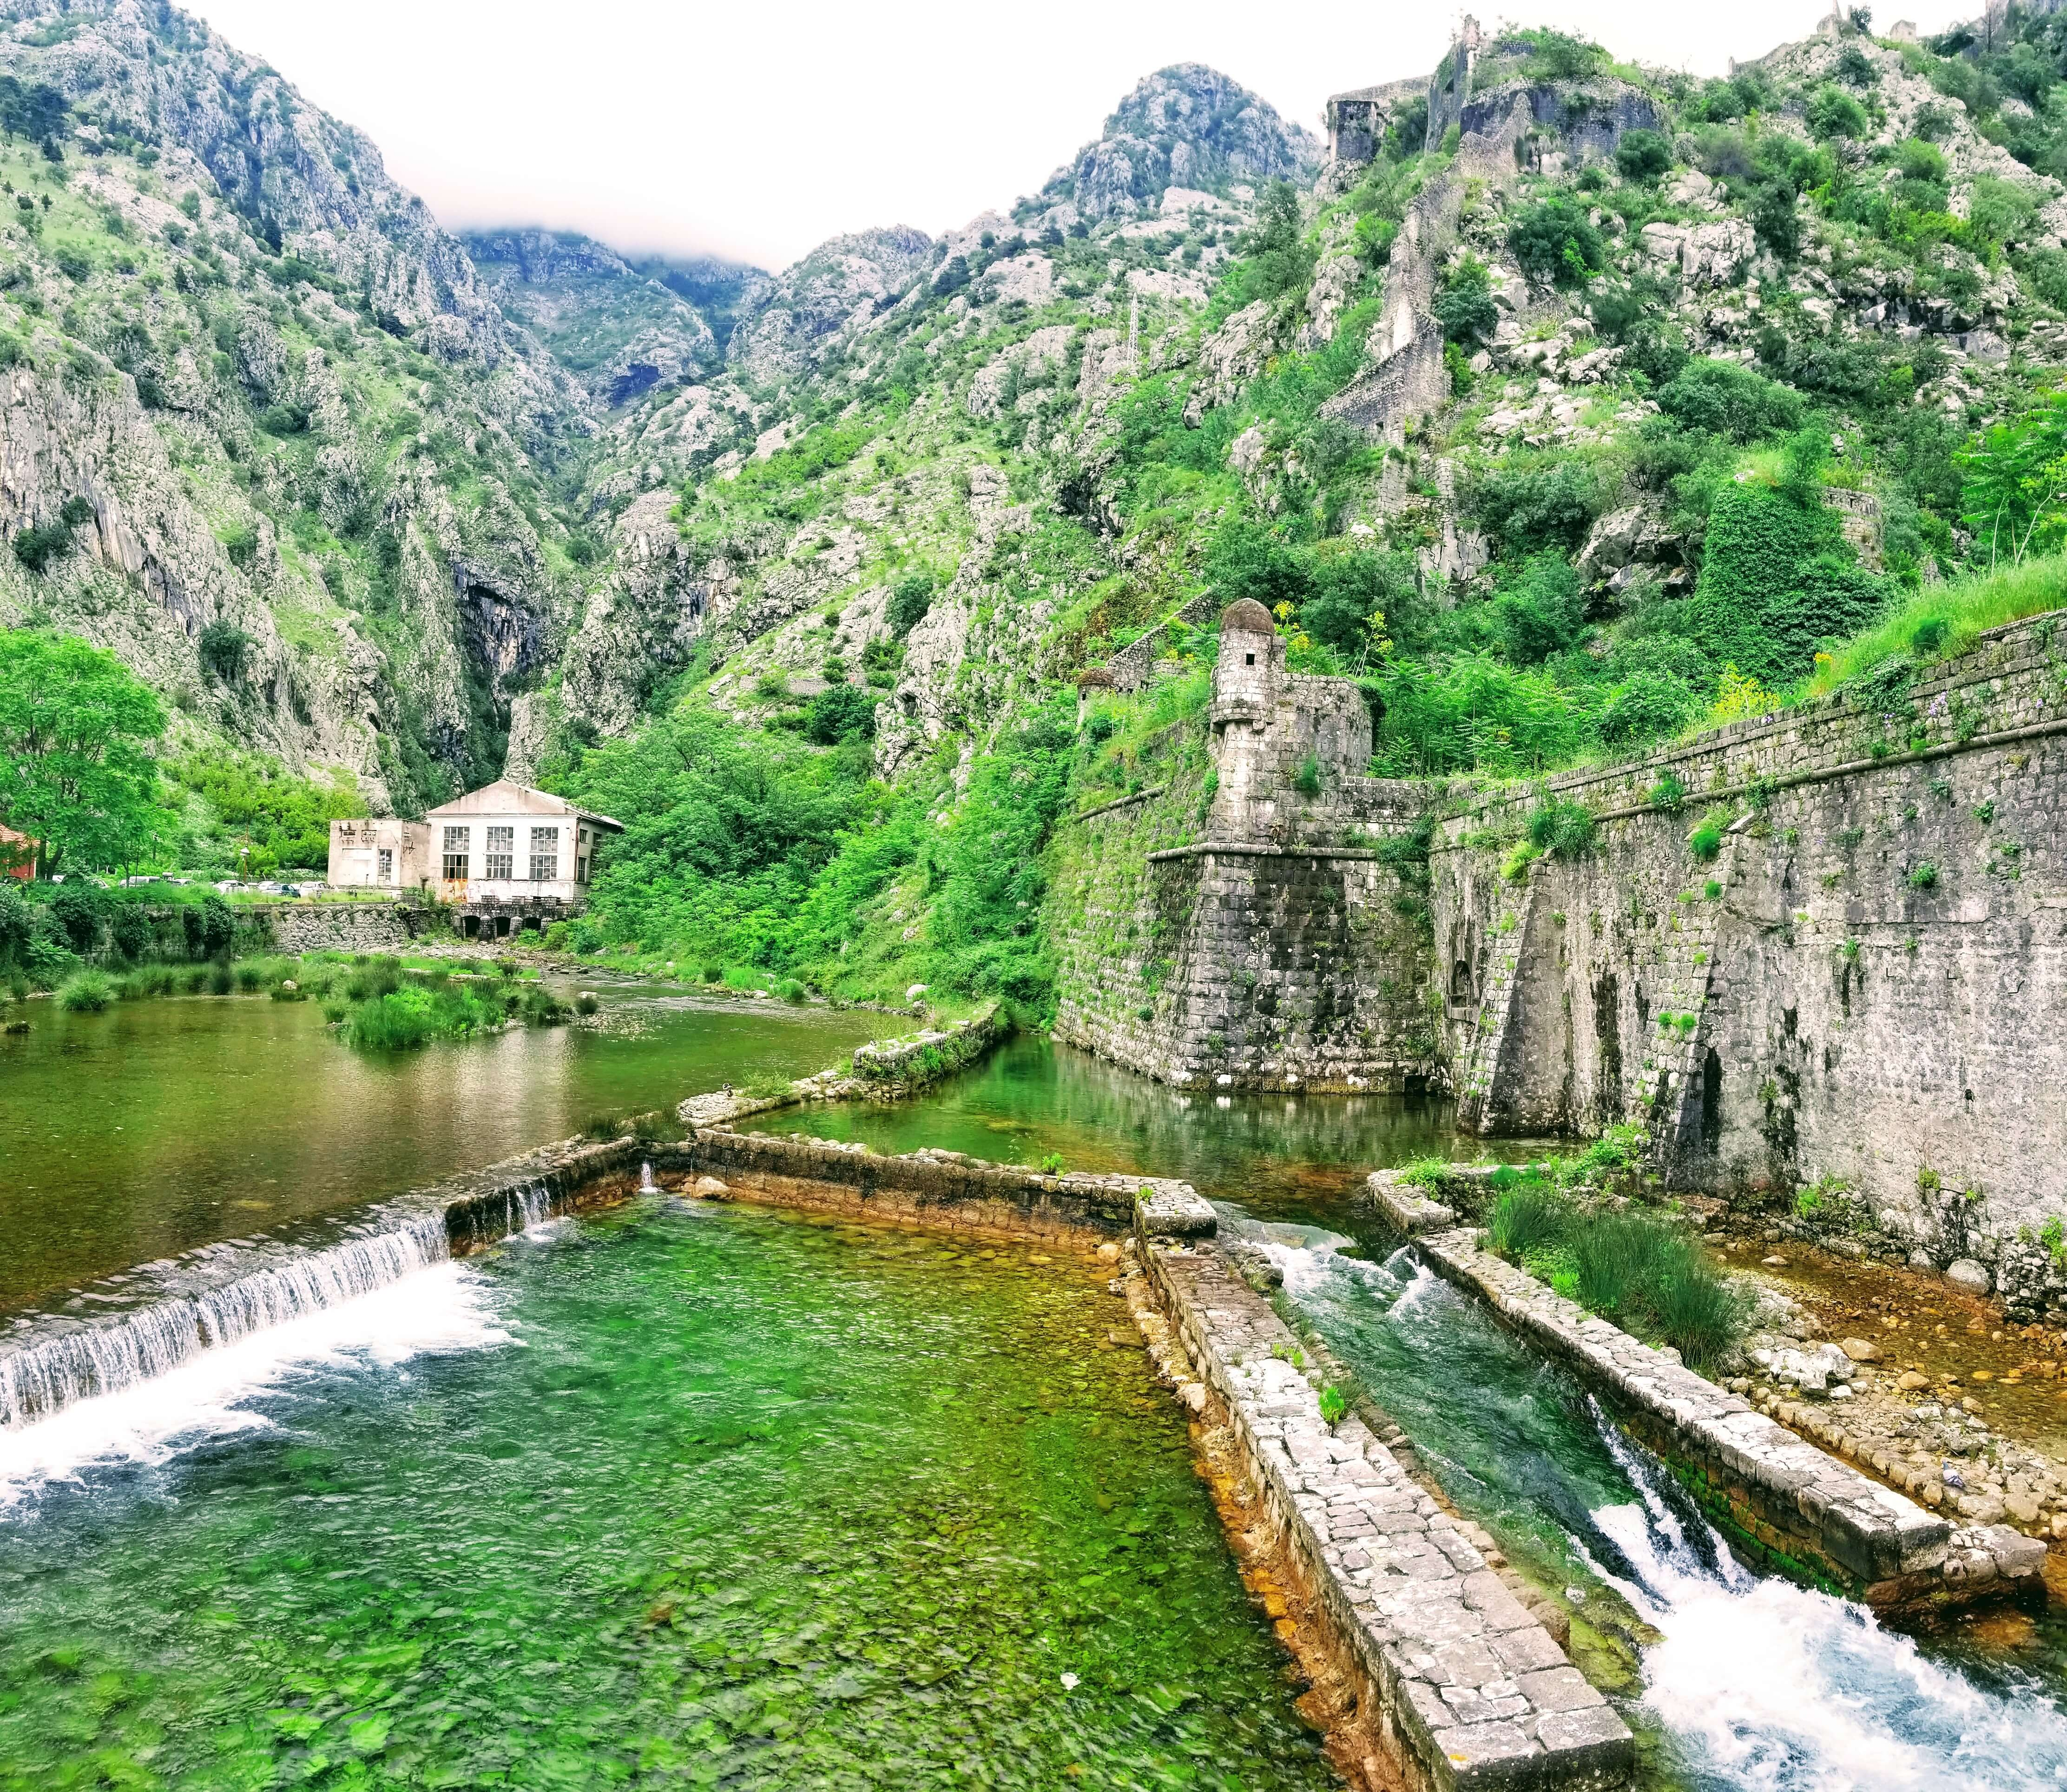 The moat around the Fortress of Kotor.